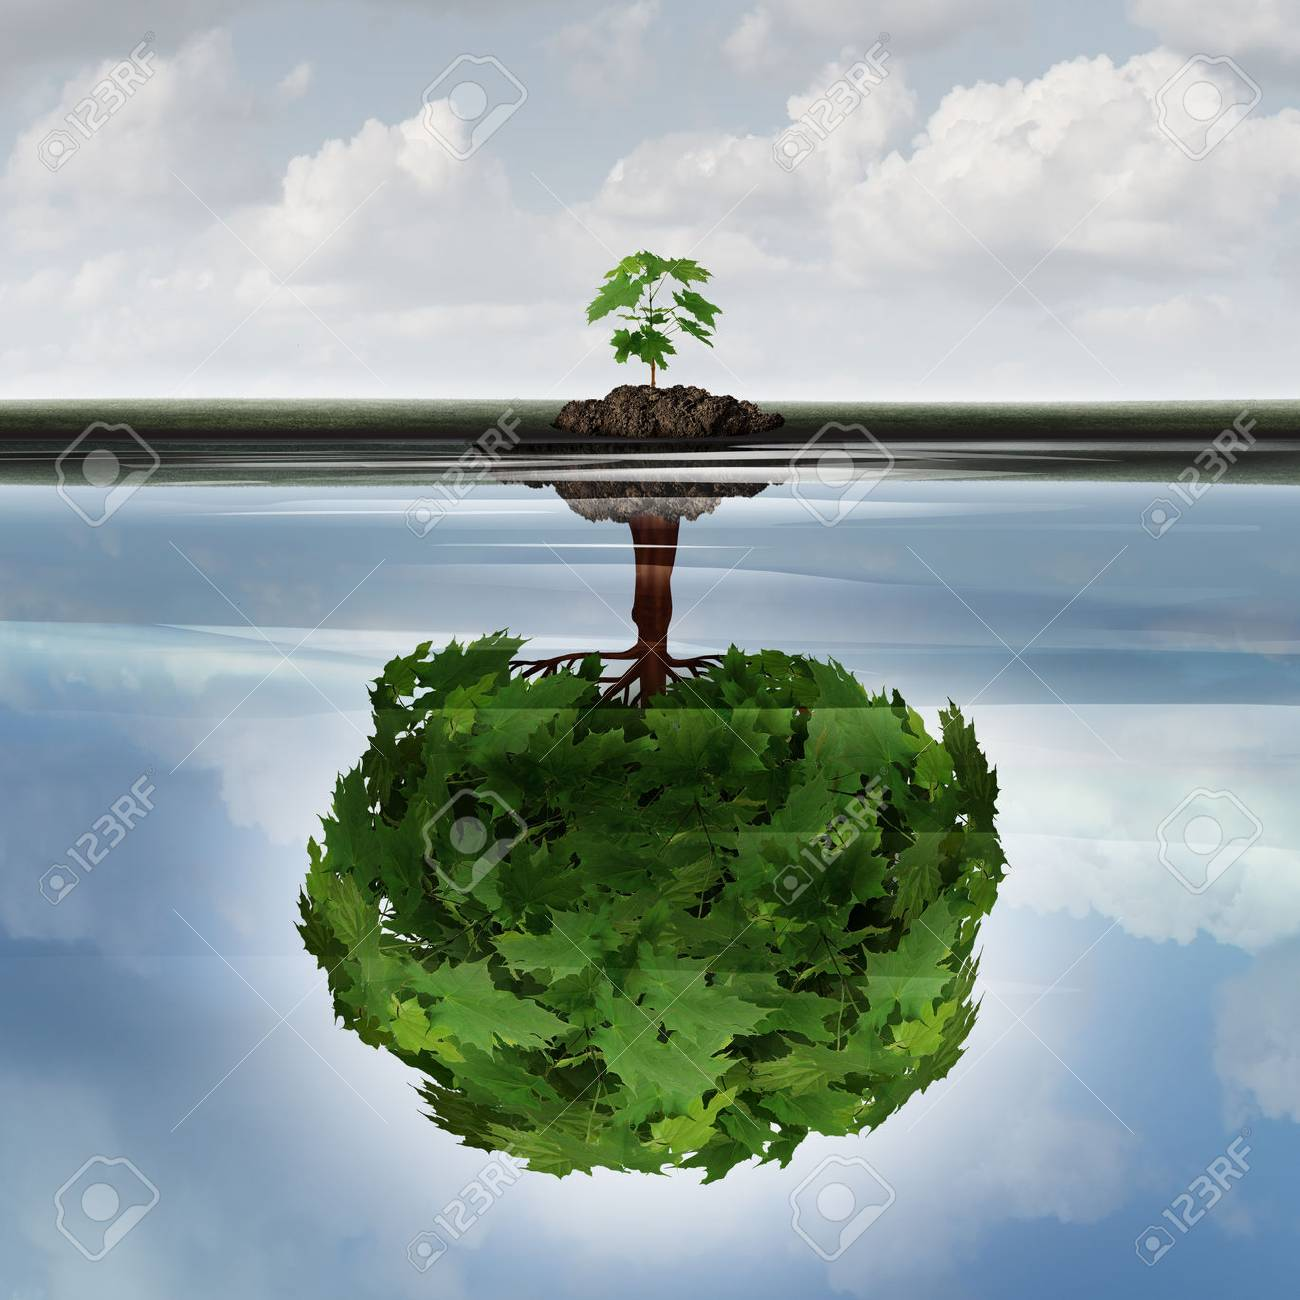 Potential success concept as a symbol for aspiration philosophy idea and determined growth motivation icon as a small young sappling making a reflection  of a mature large tree in the water with 3D illustration elements. Stock Illustration - 63825900